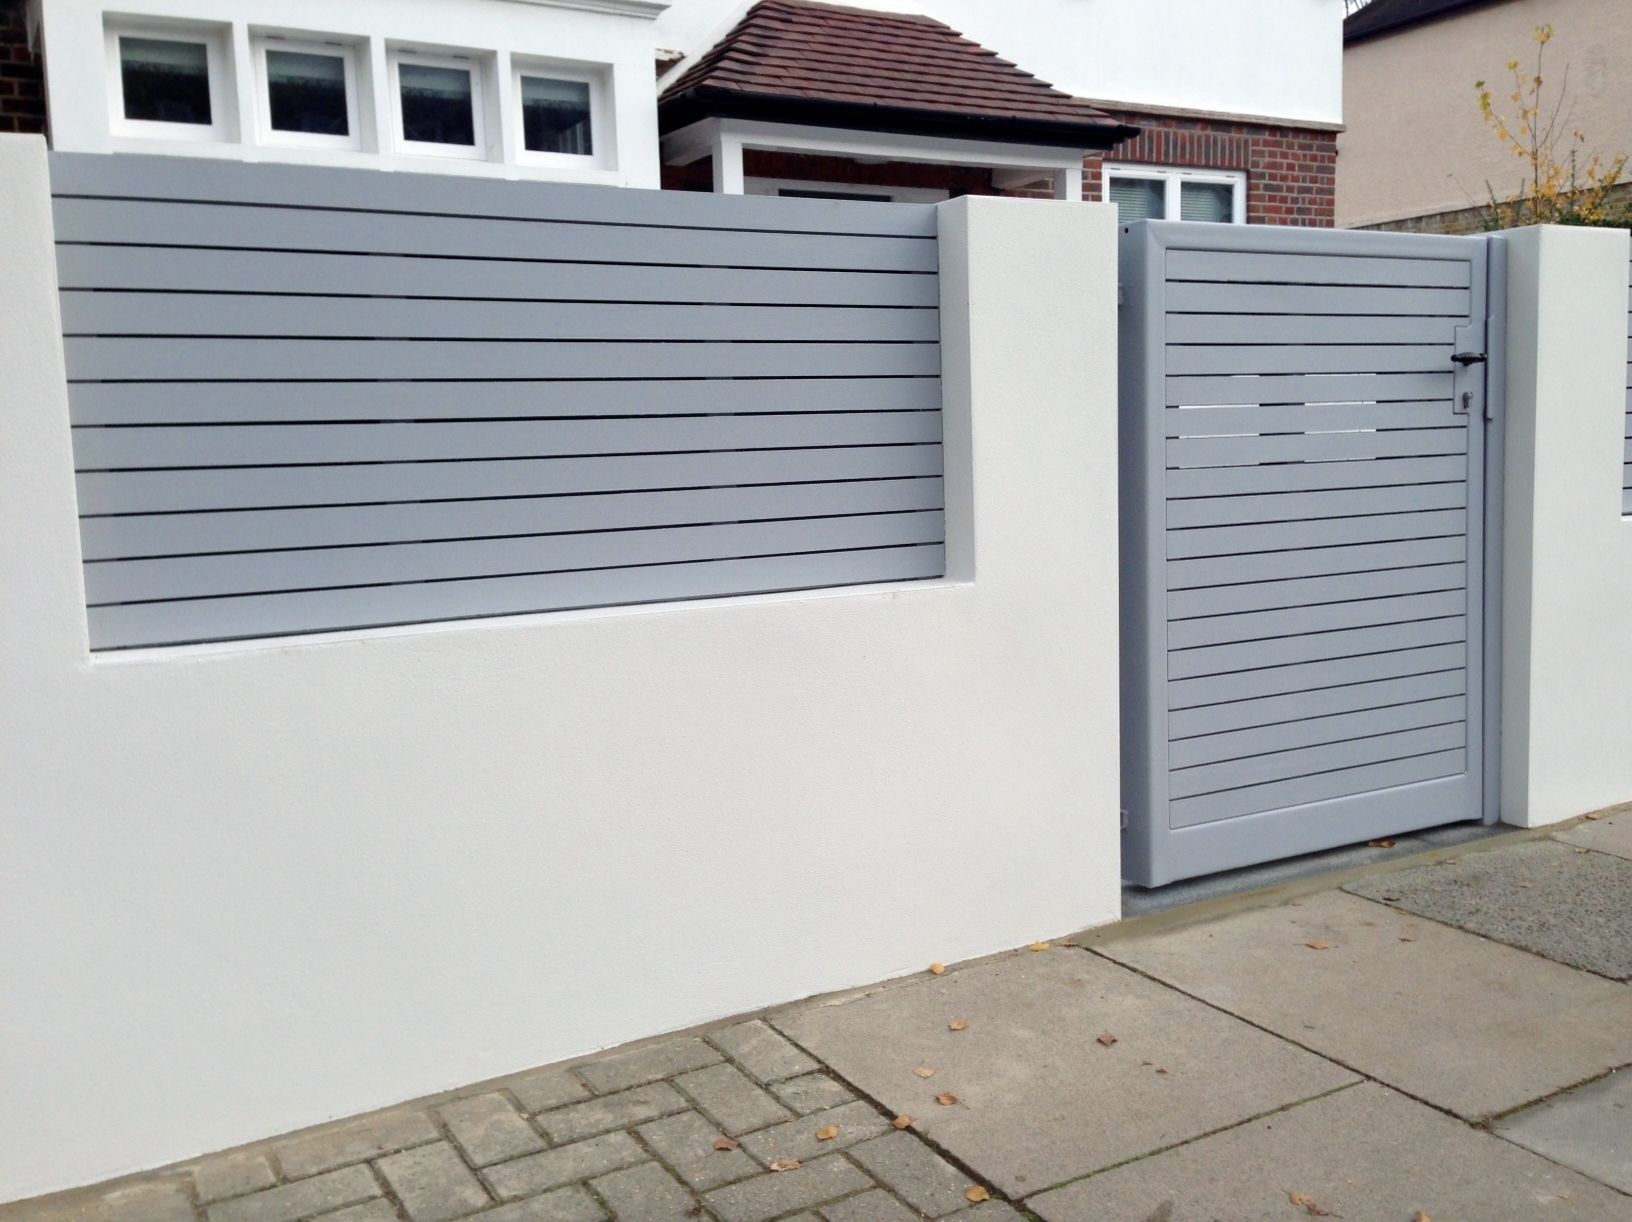 front boundary wall screen automated electronic gate installation grey wooden fence bike store modern garden design - Wall Fencing Designs